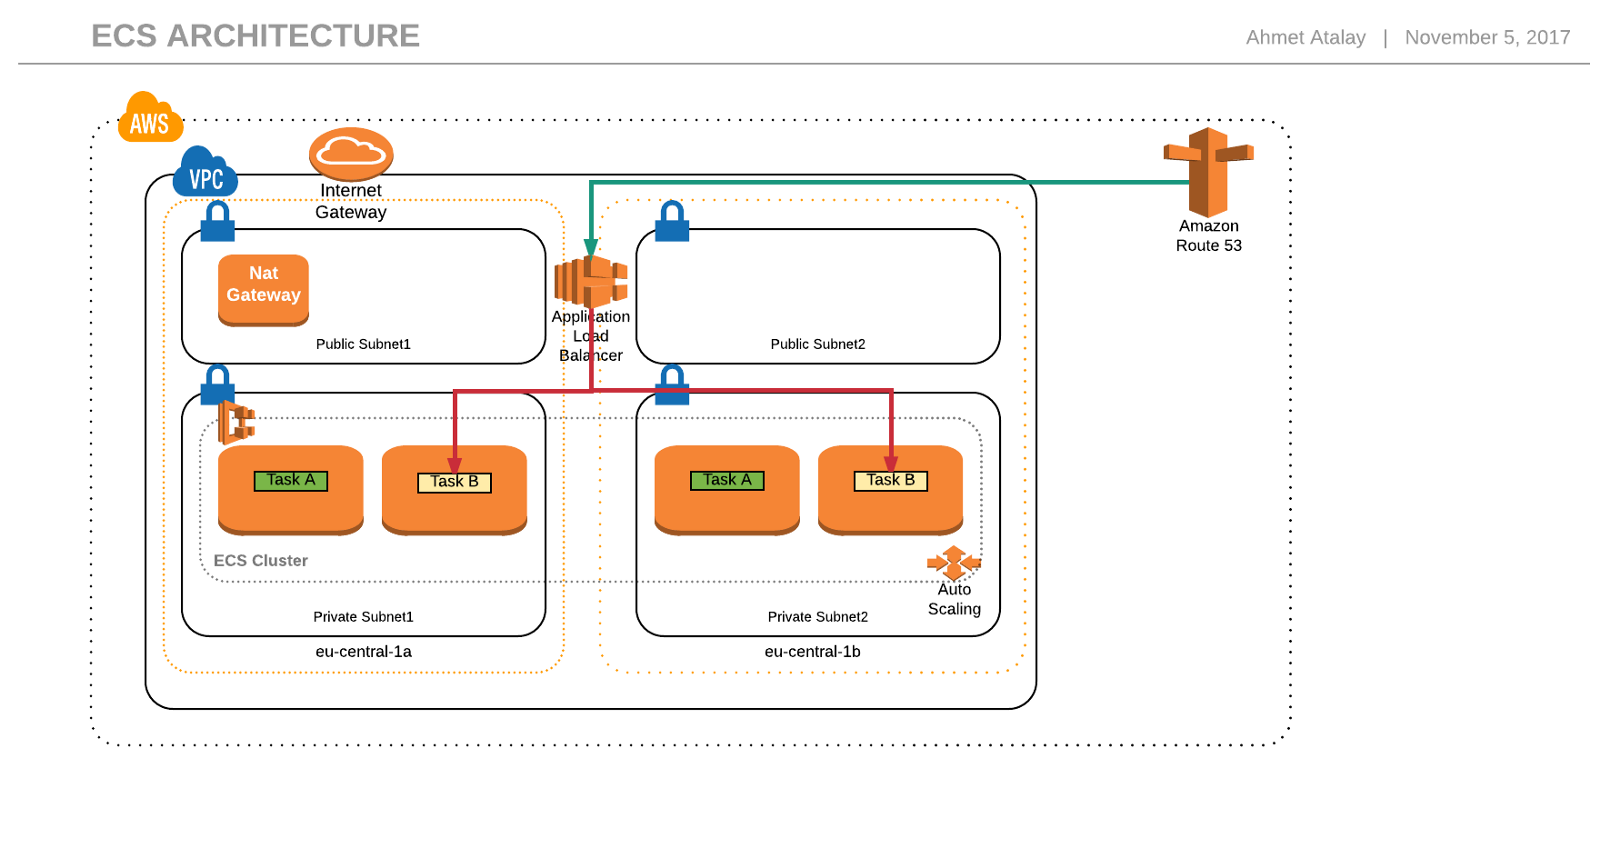 Building highly available scalable and reliable ecs clusters part in this architecture microservicea is running in 2 tasks called taska which are in 2 different ec2 instances and different availability zones ccuart Images